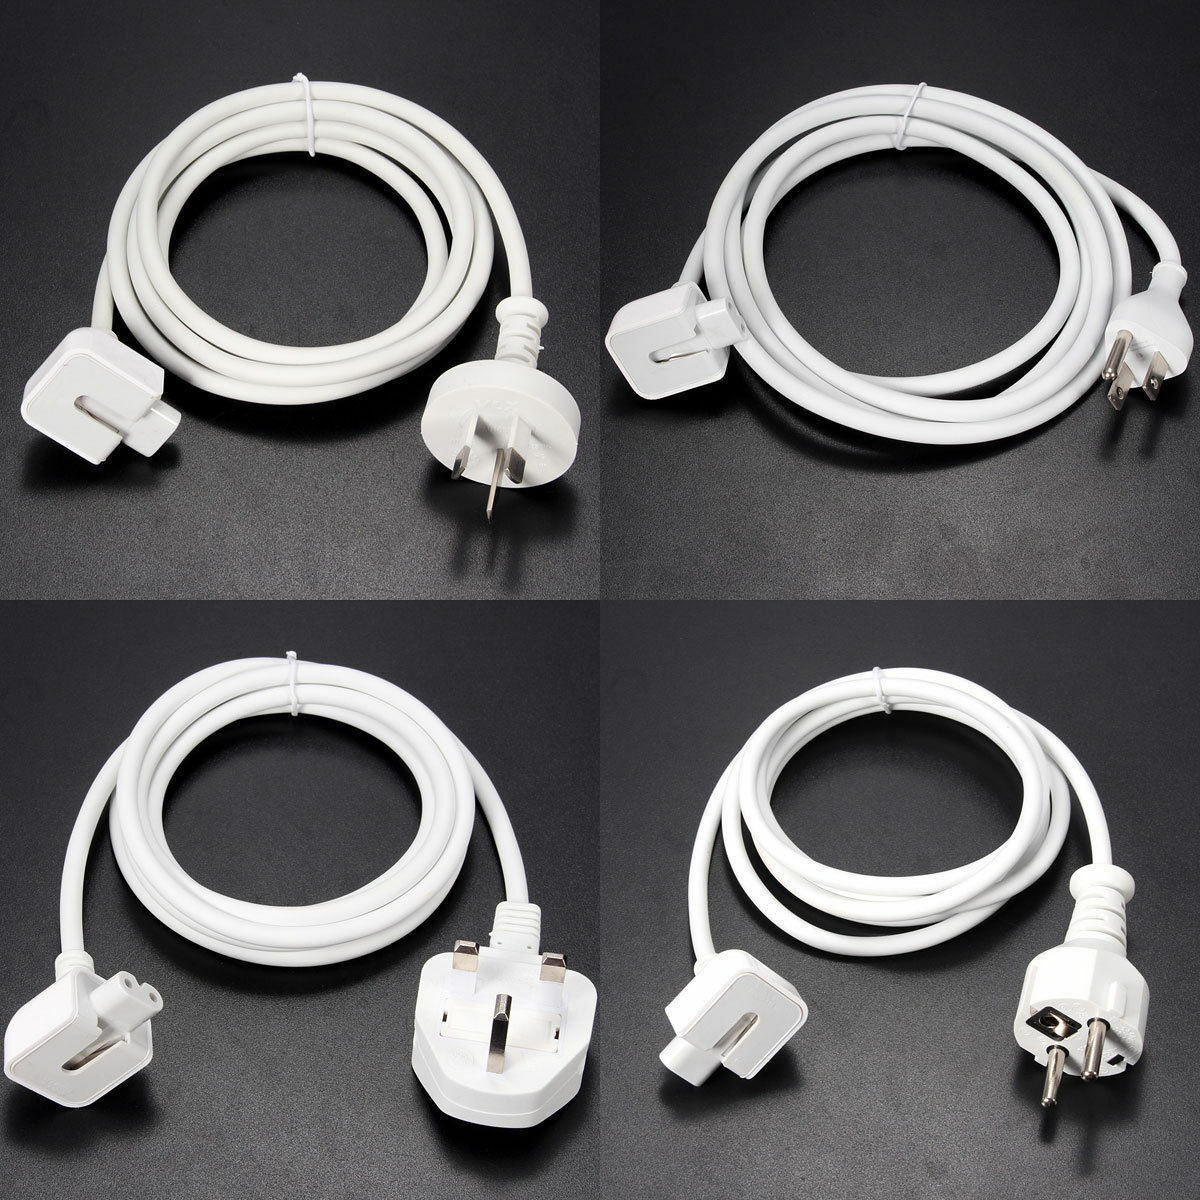 Power Adapter Charger Extension Cable for Apple iPad Mini  Air Mac book Pro